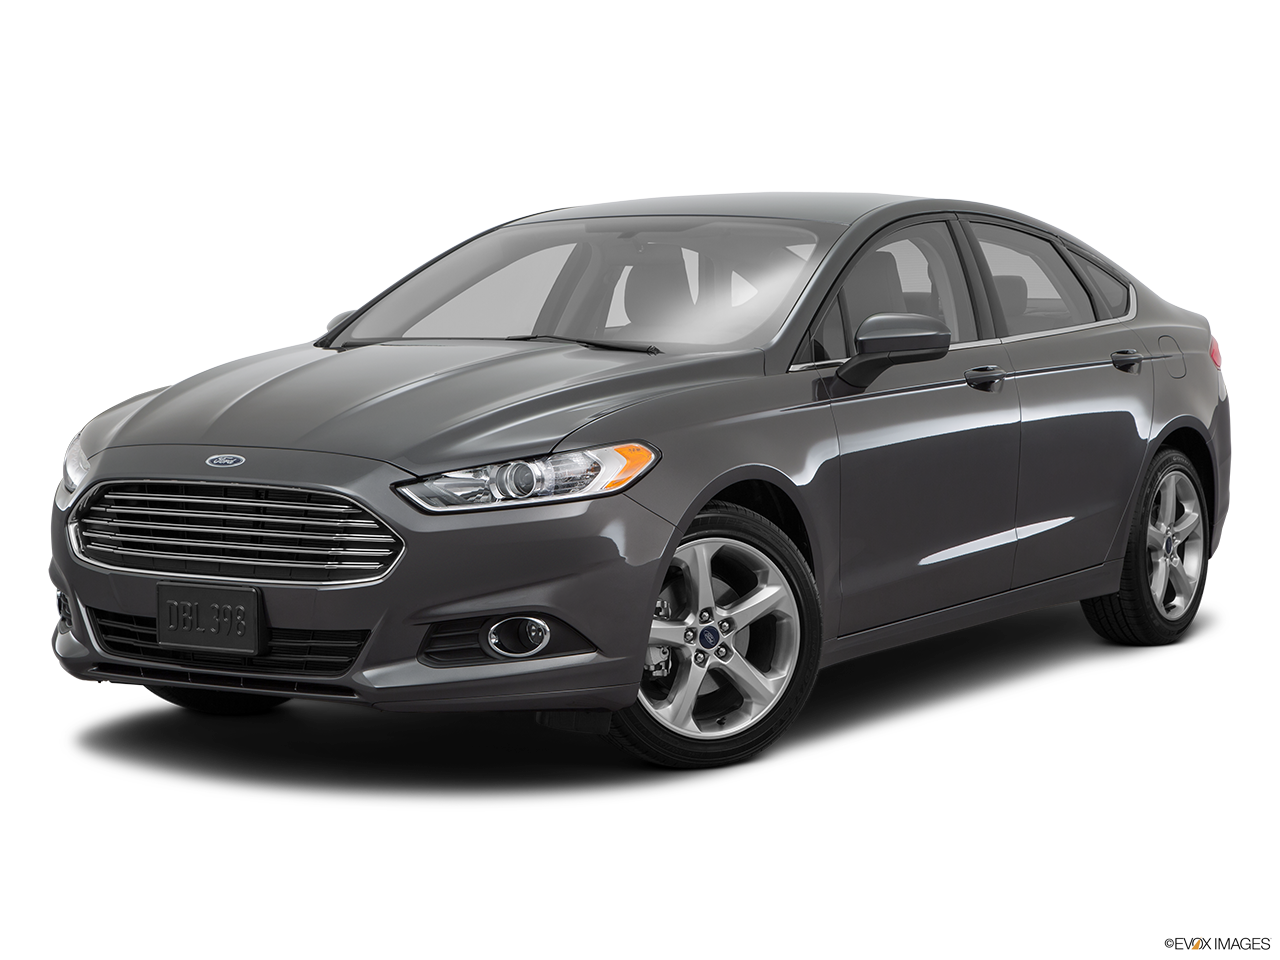 Test Drive A 2016 Ford Fusion at Huntington Beach Ford in Huntington Beach